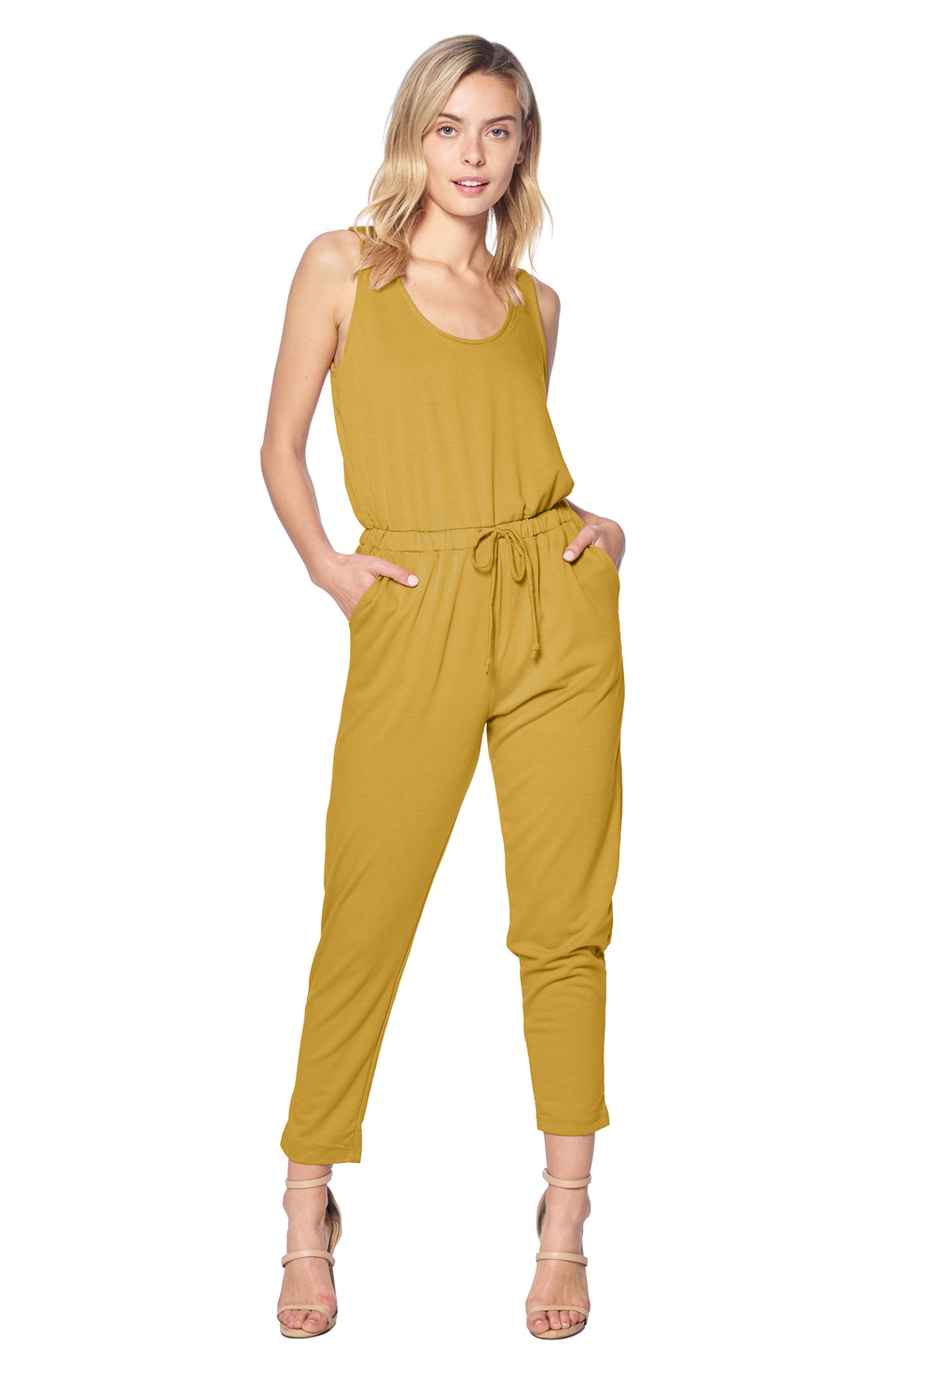 JUMPSUIT SLEEVELESS  - orangeshine.com